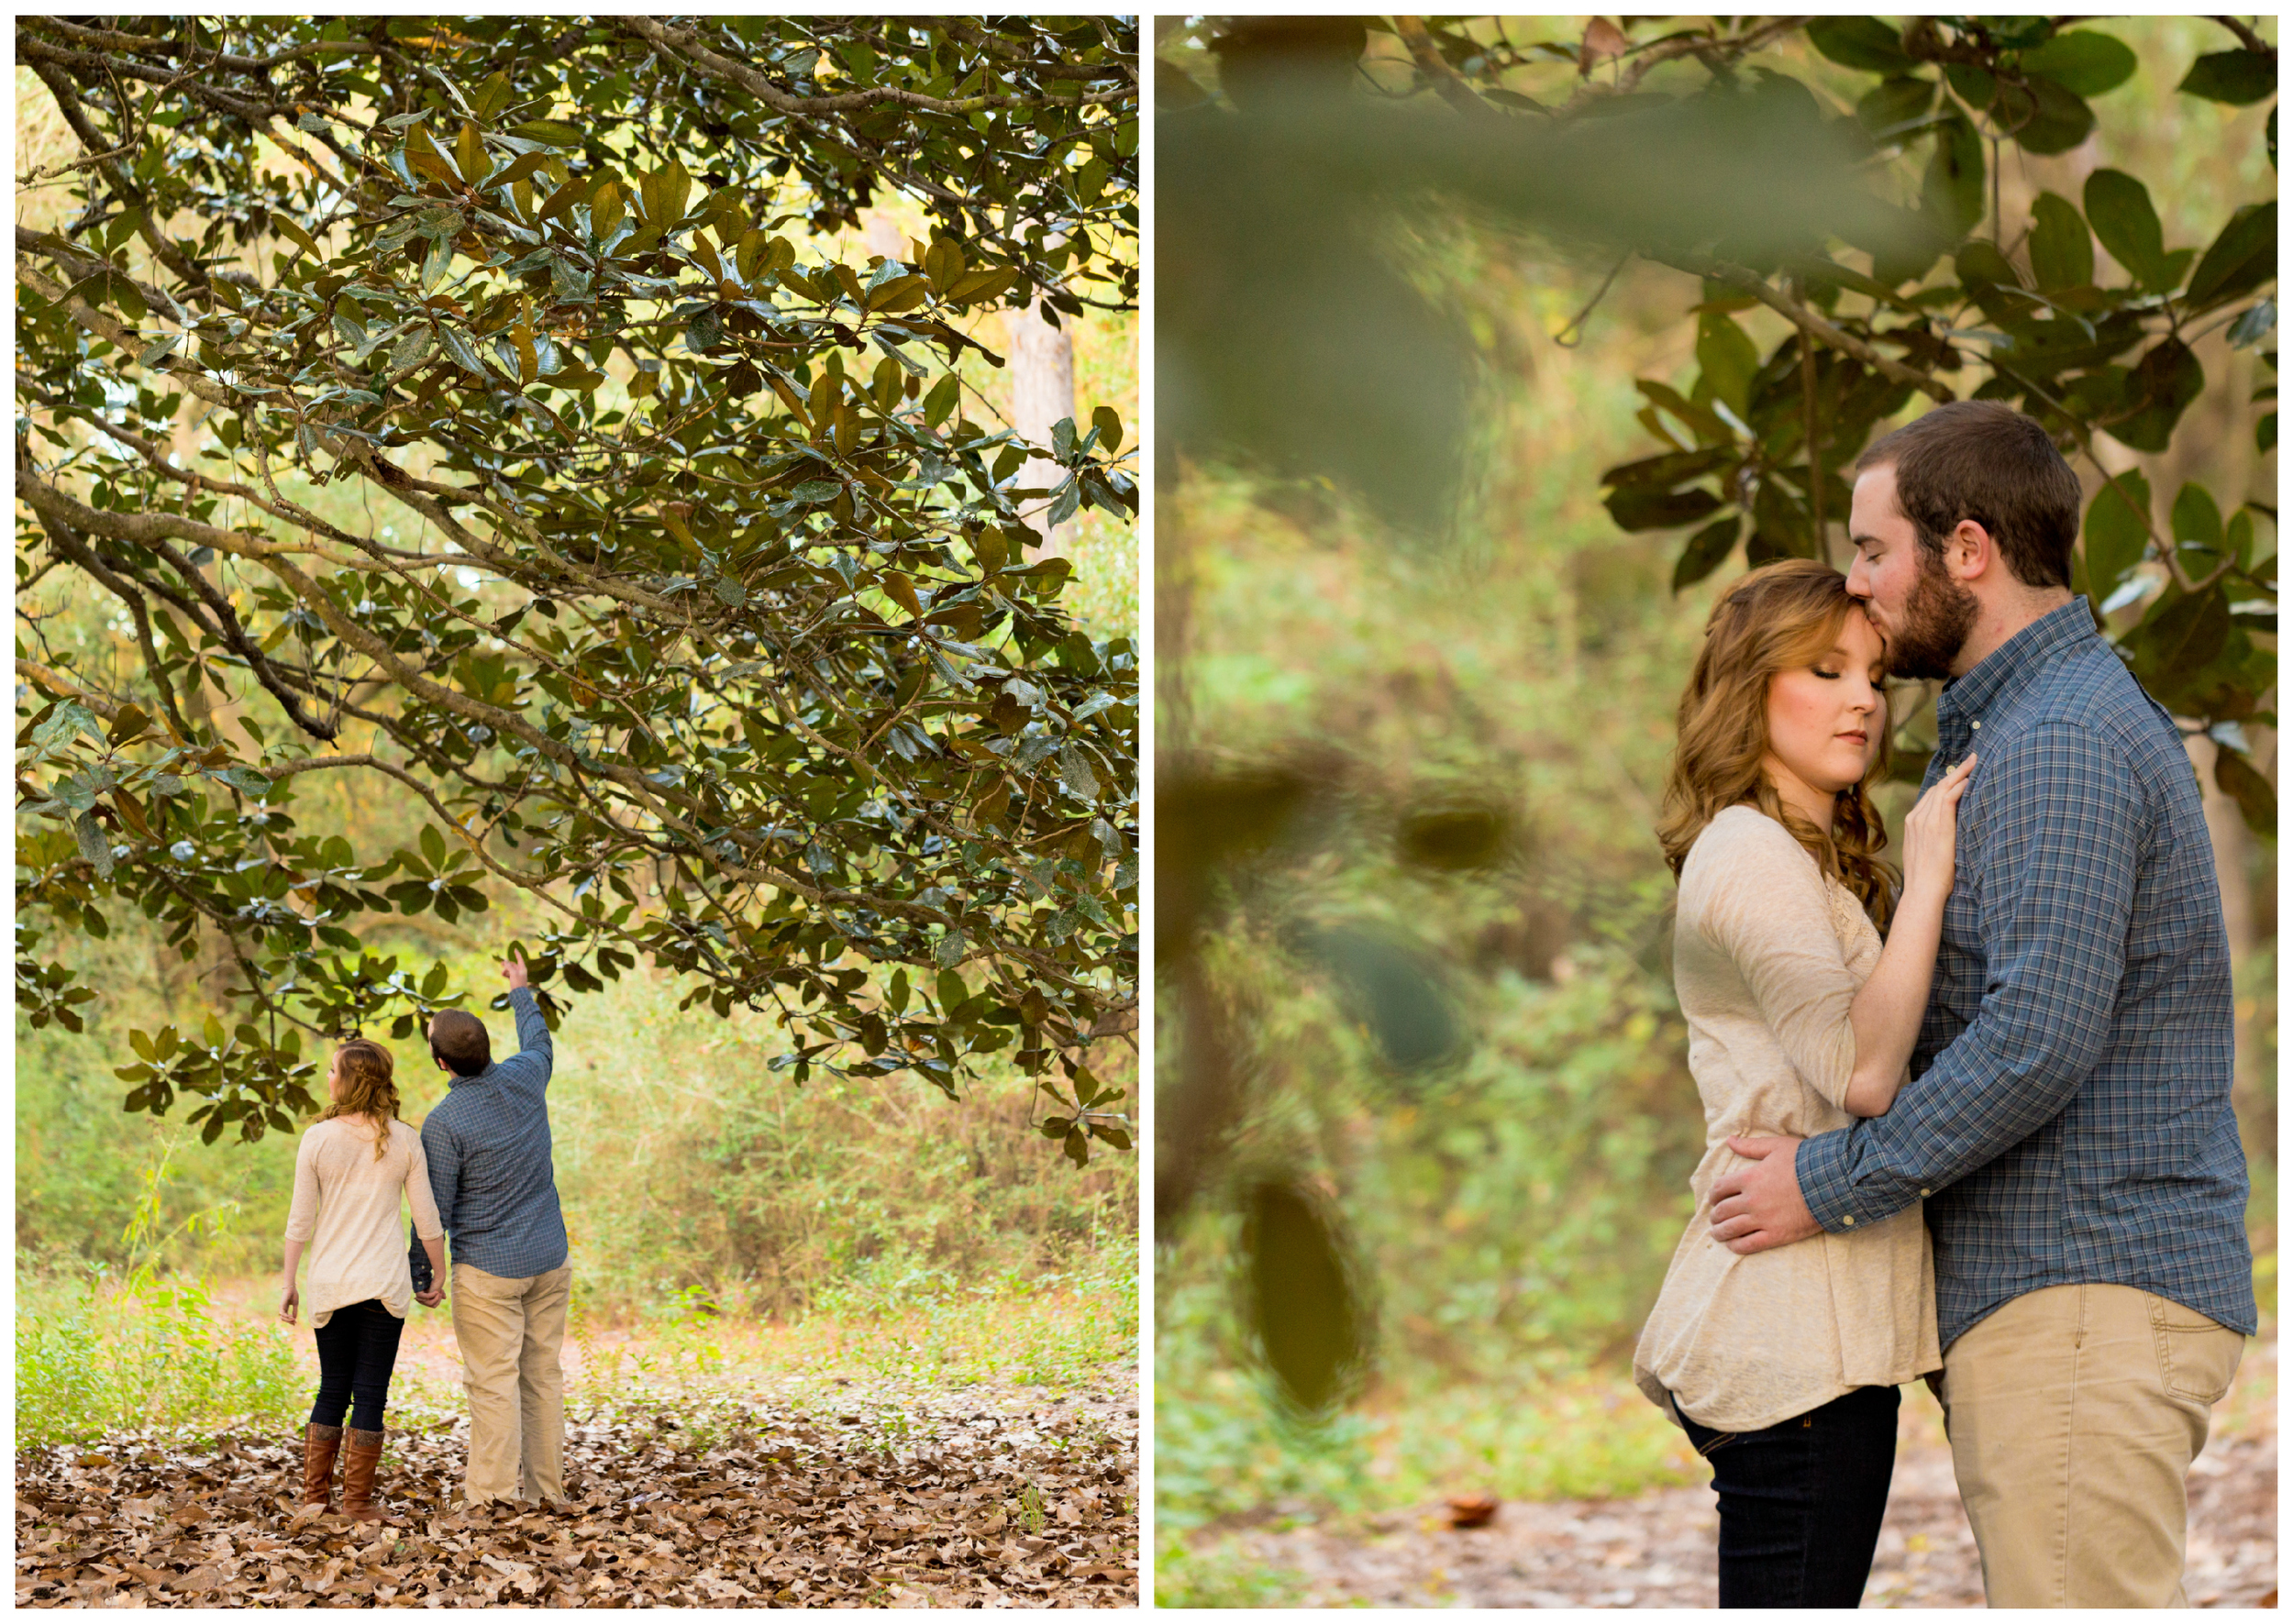 romantic, candid engagement photos with magnolia tree (Ocean Springs engagement photography)